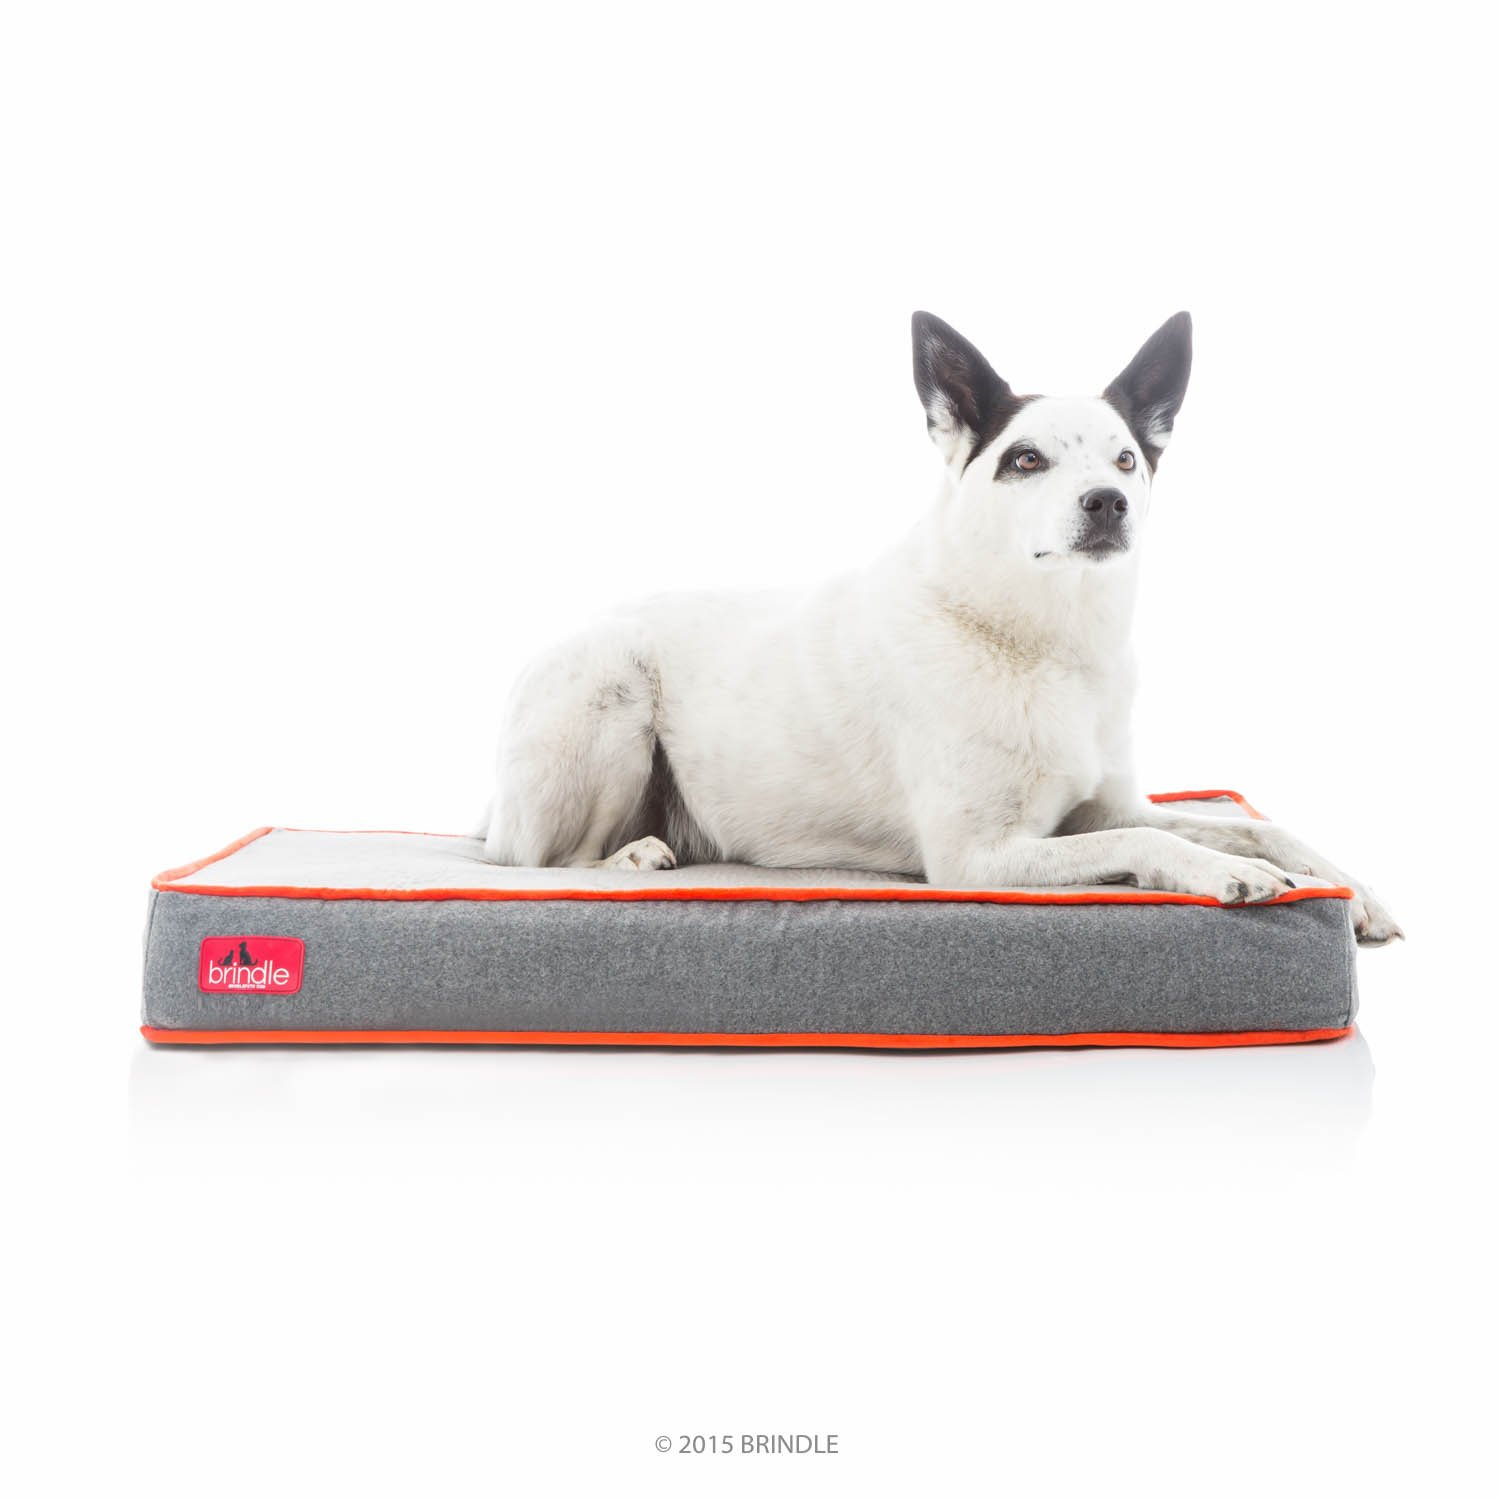 Brindle Waterproof Designer Memory Foam Pet Bed - Charcoal Velour